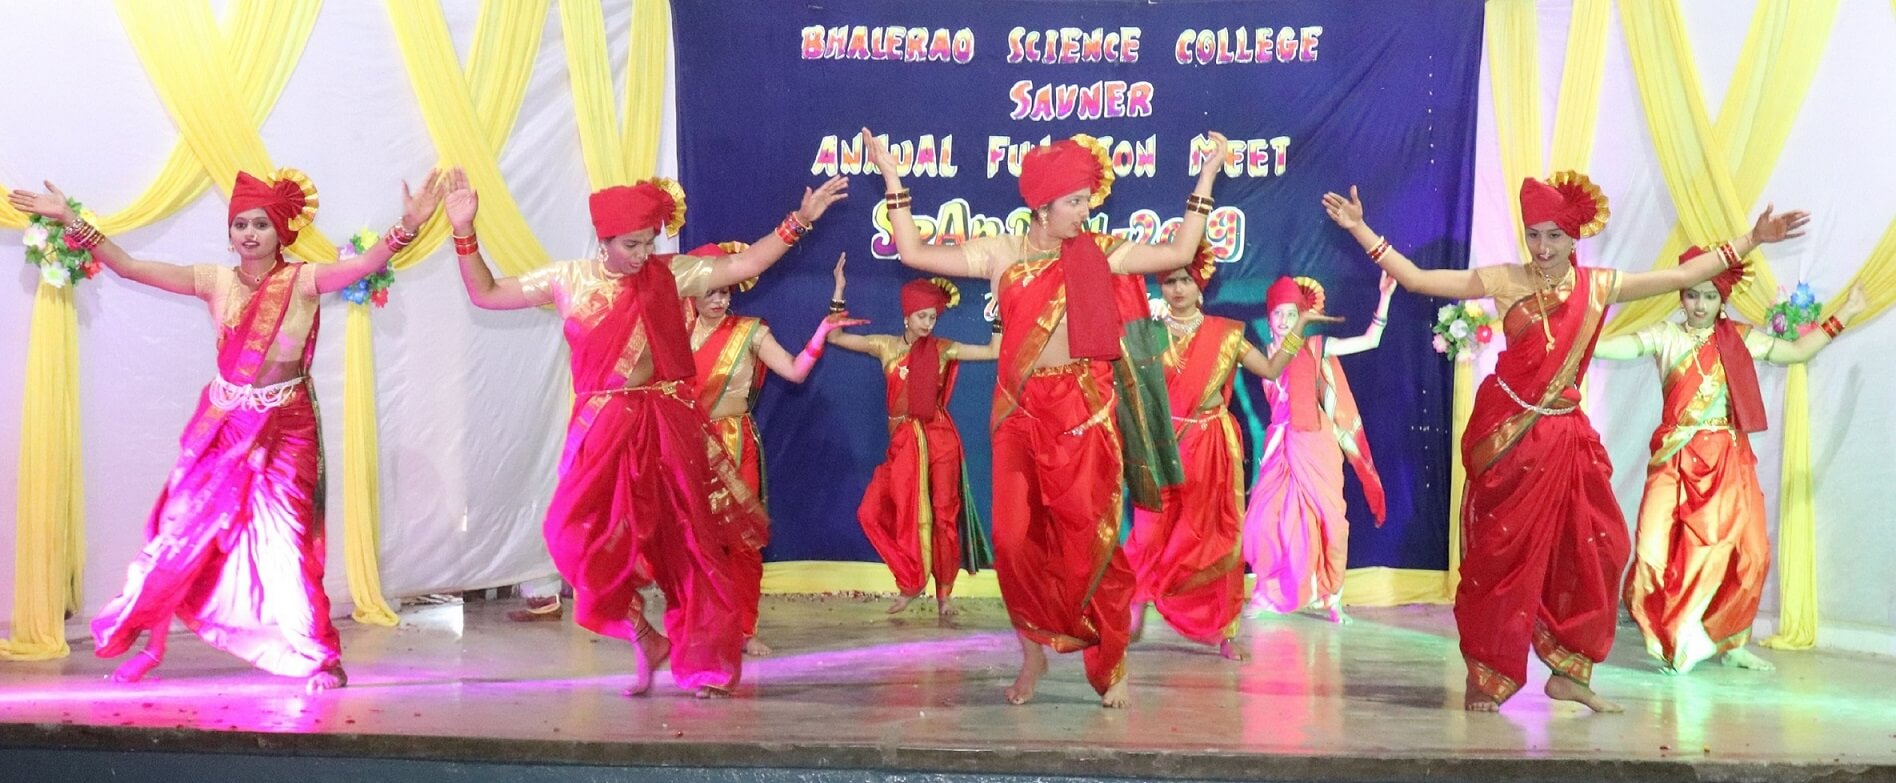 Annual Cultural Events